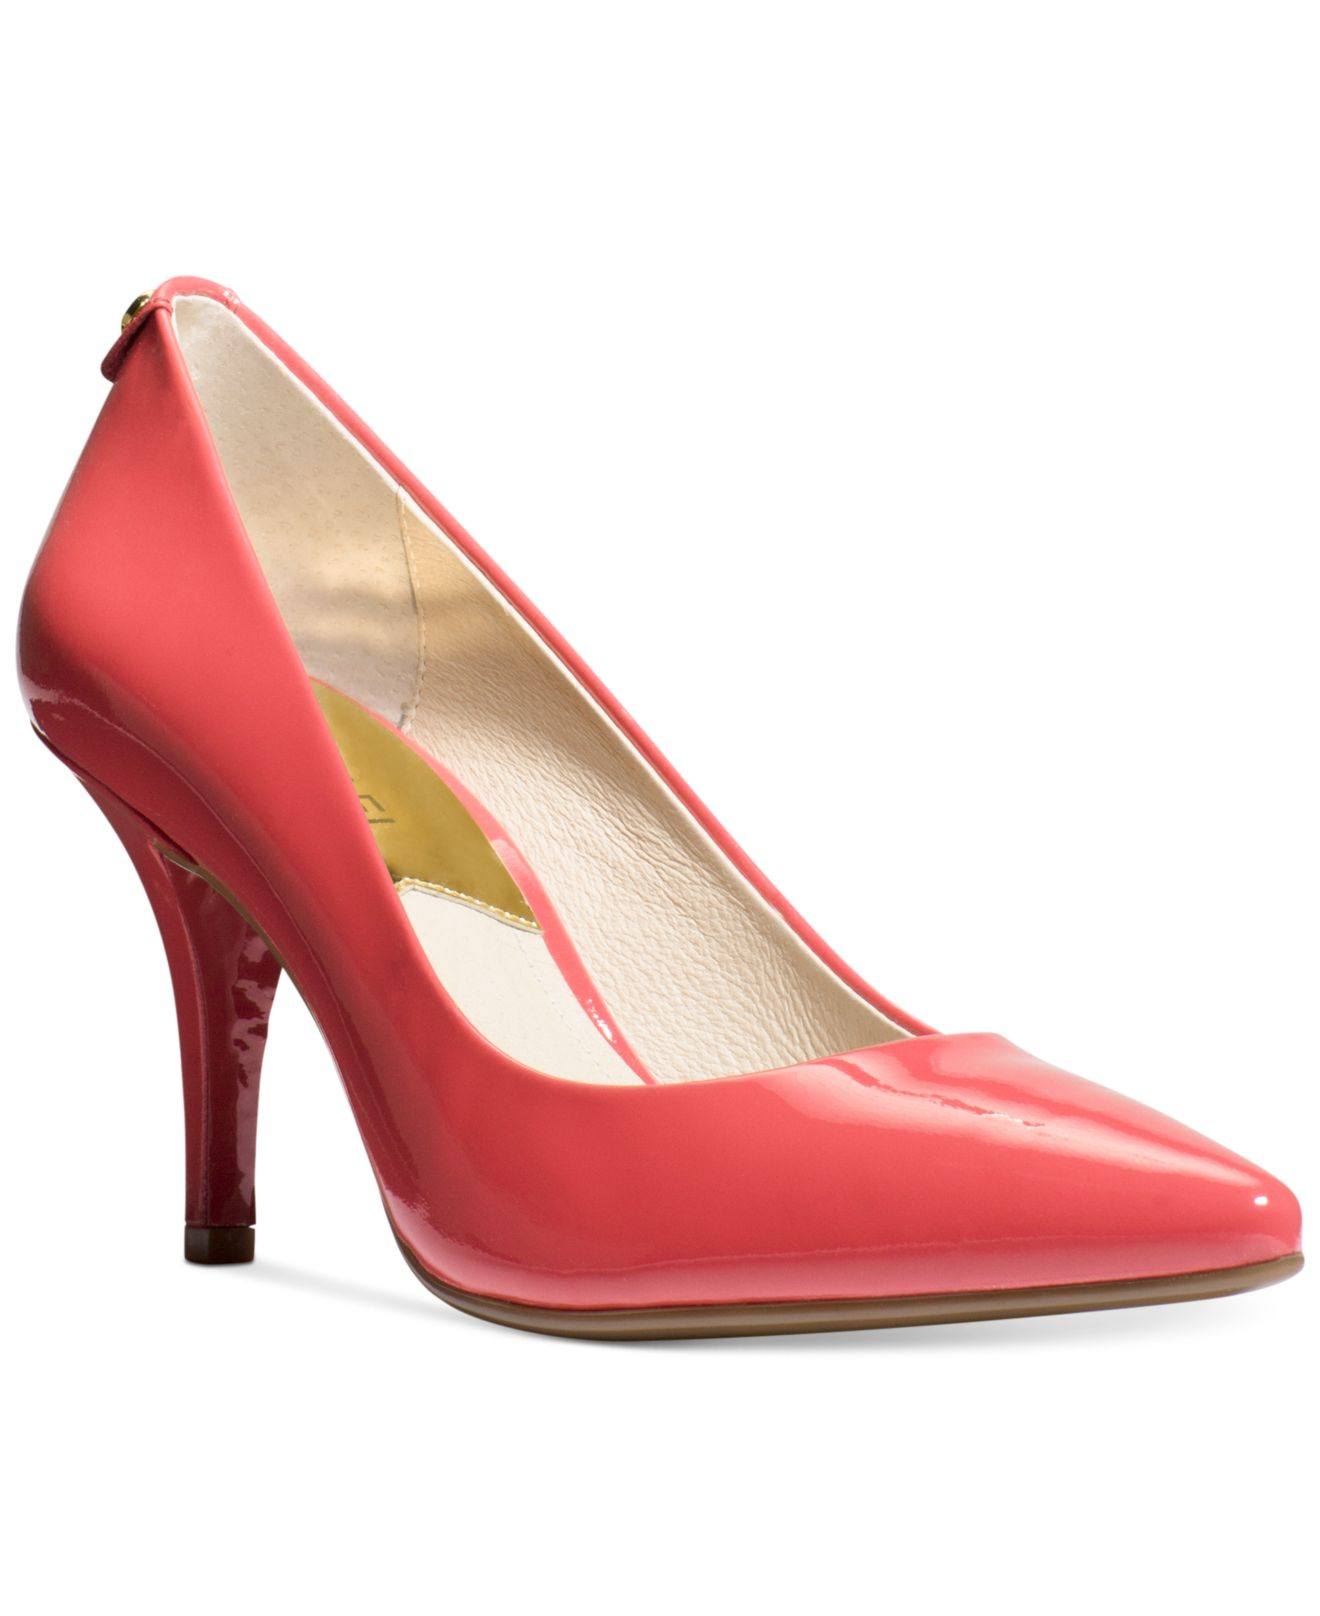 fcd21f3f21c7 Gallery. Previously sold at  Macy s · Women s Michael By Michael Kors Mk  Flex Women s Red Bow Heels ...